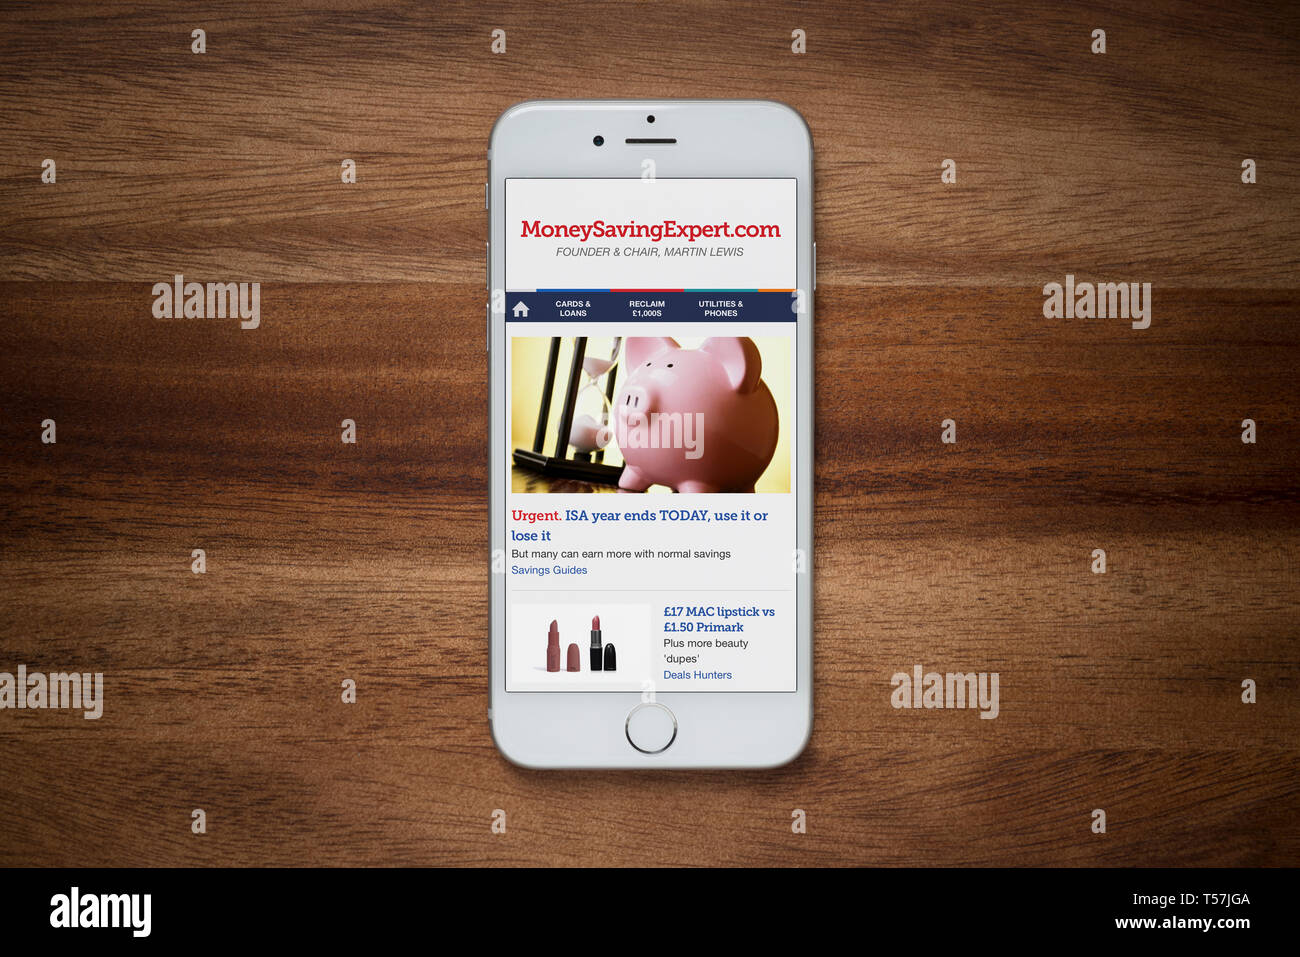 An iPhone showing the Money Saving Expert website rests on a plain wooden table (Editorial use only). - Stock Image